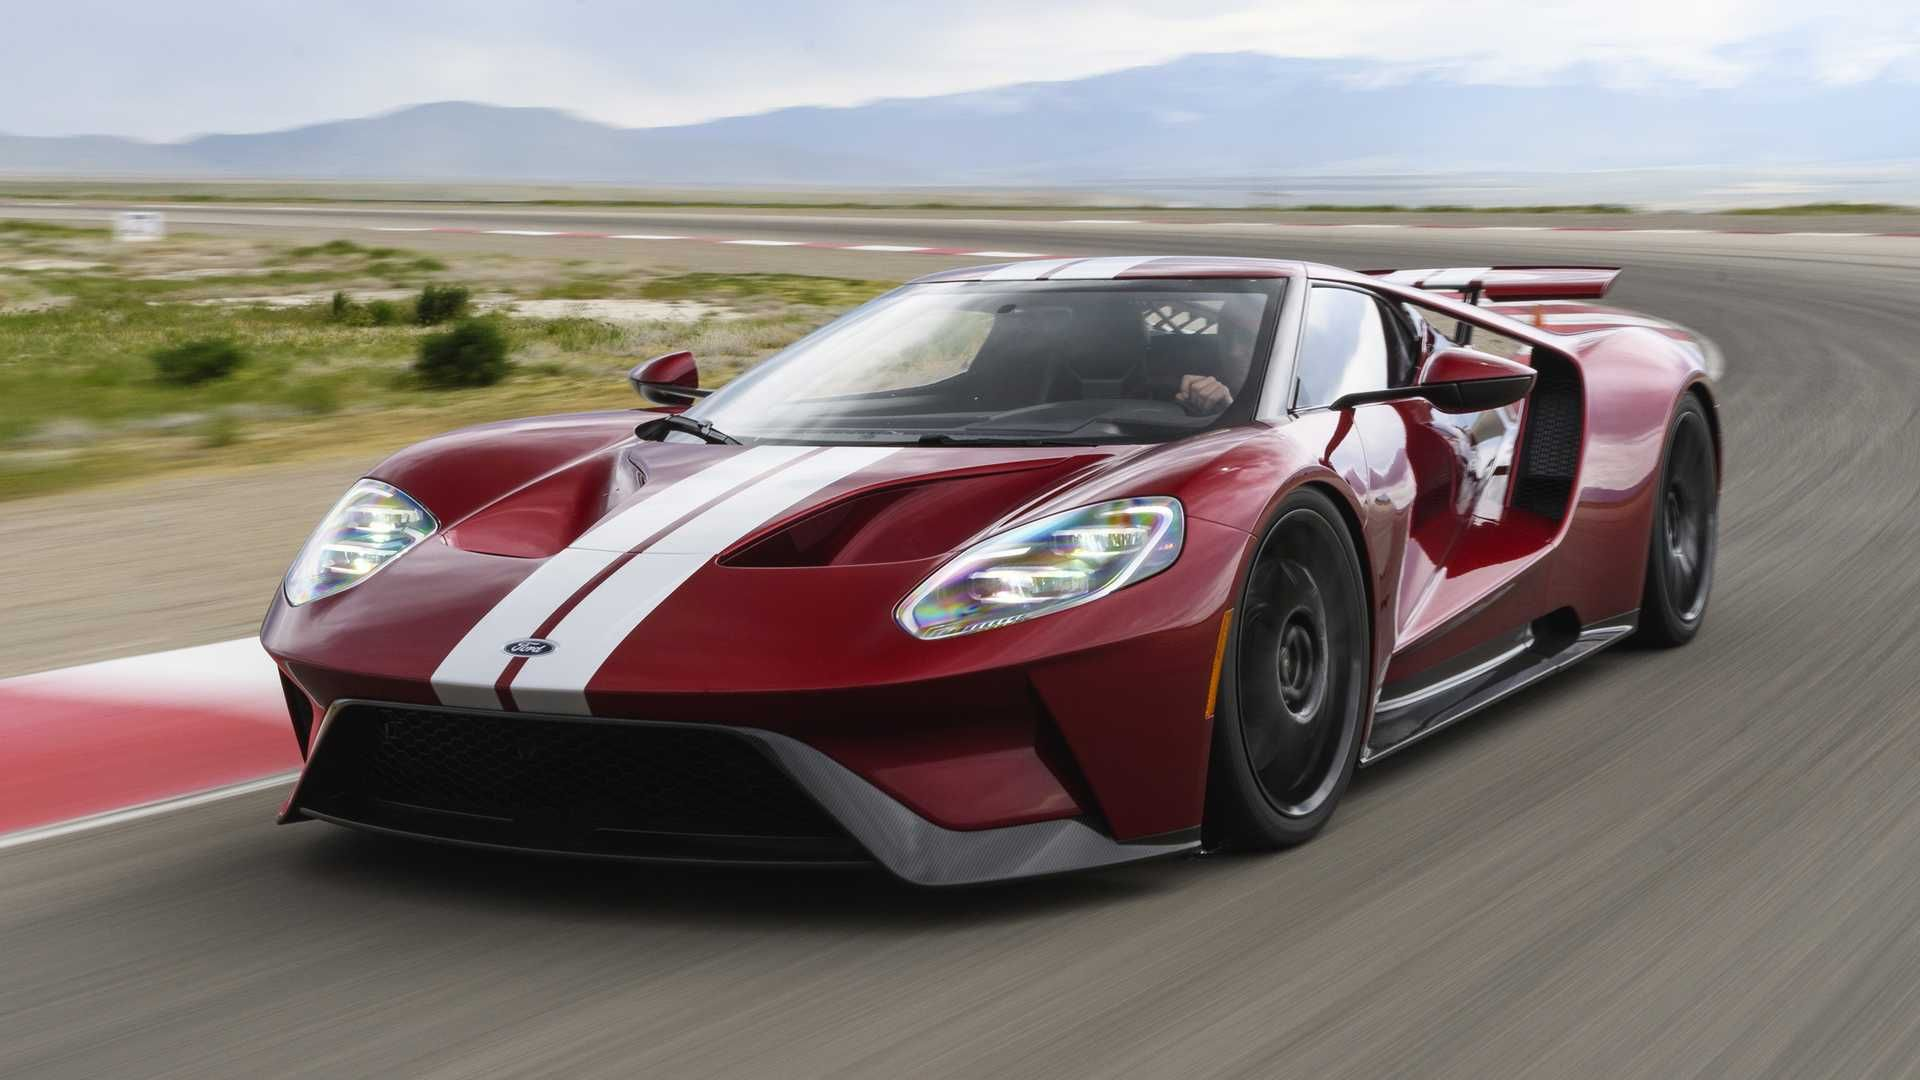 We Experience Pure Driving Nirvana In The  Mph Ford Gt Supercar On Road And Track In Utah